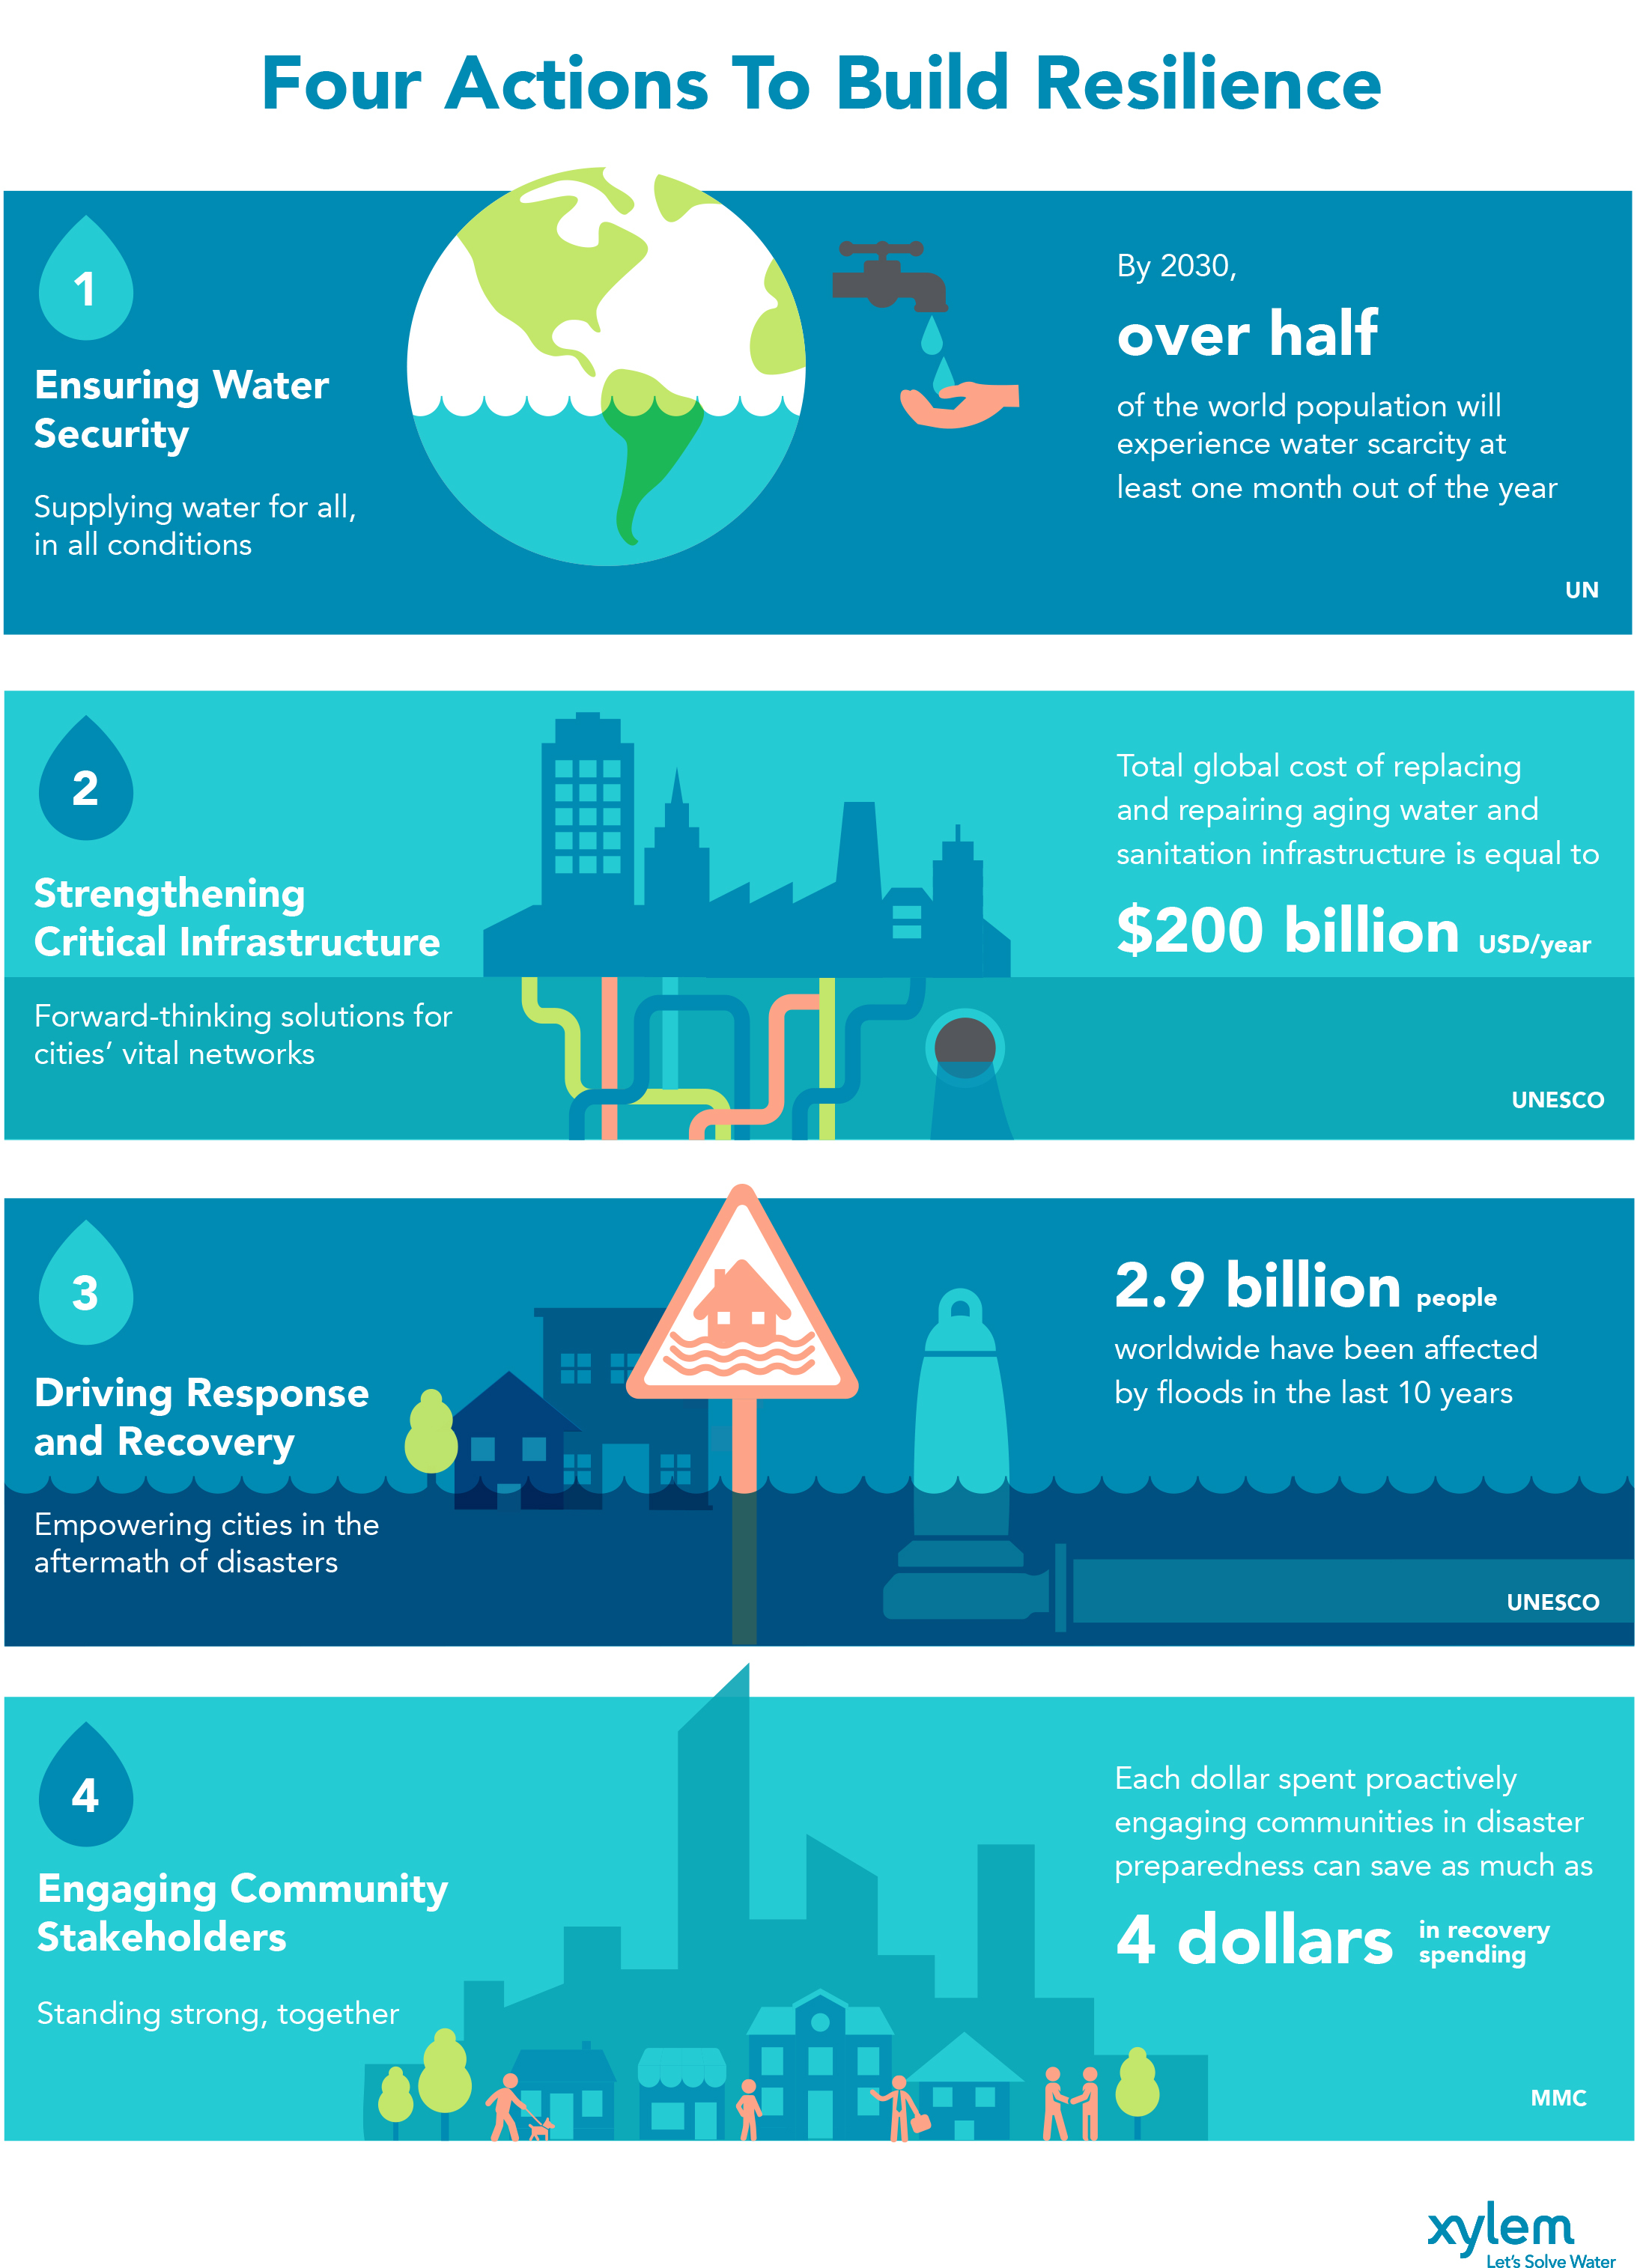 Four Actions to Build Urban Resilience (Graphic: Business Wire)